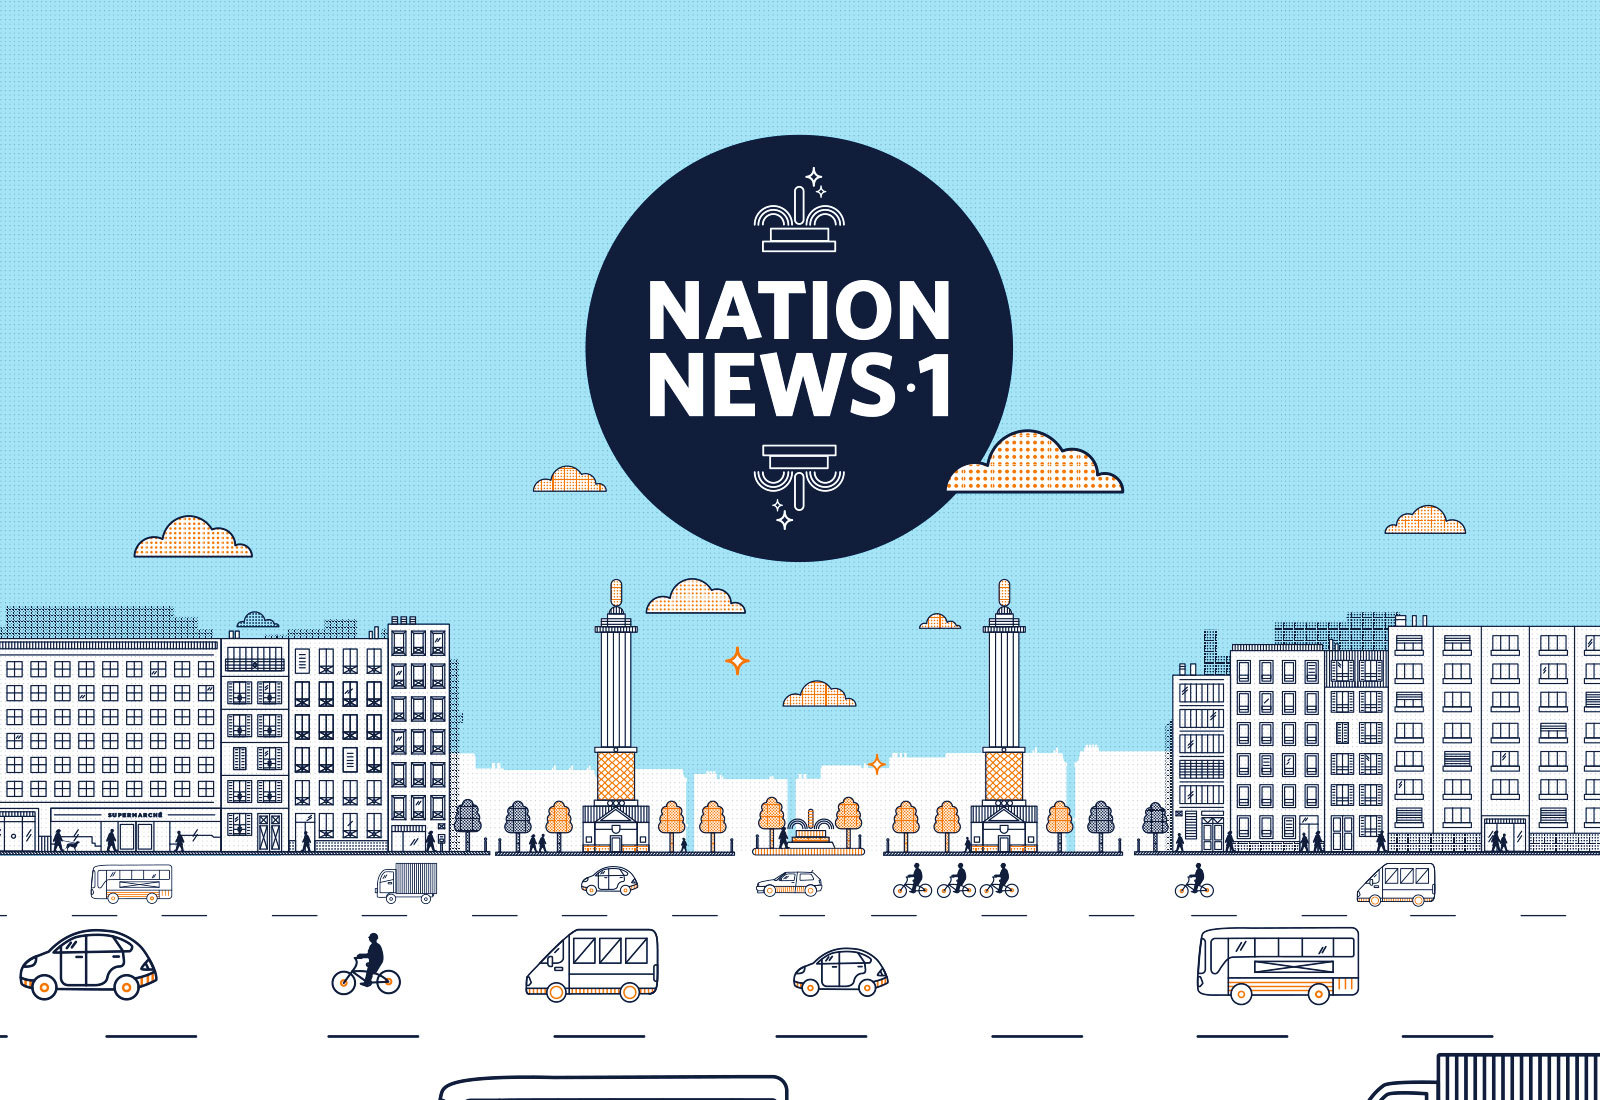 Nation News 1 cover